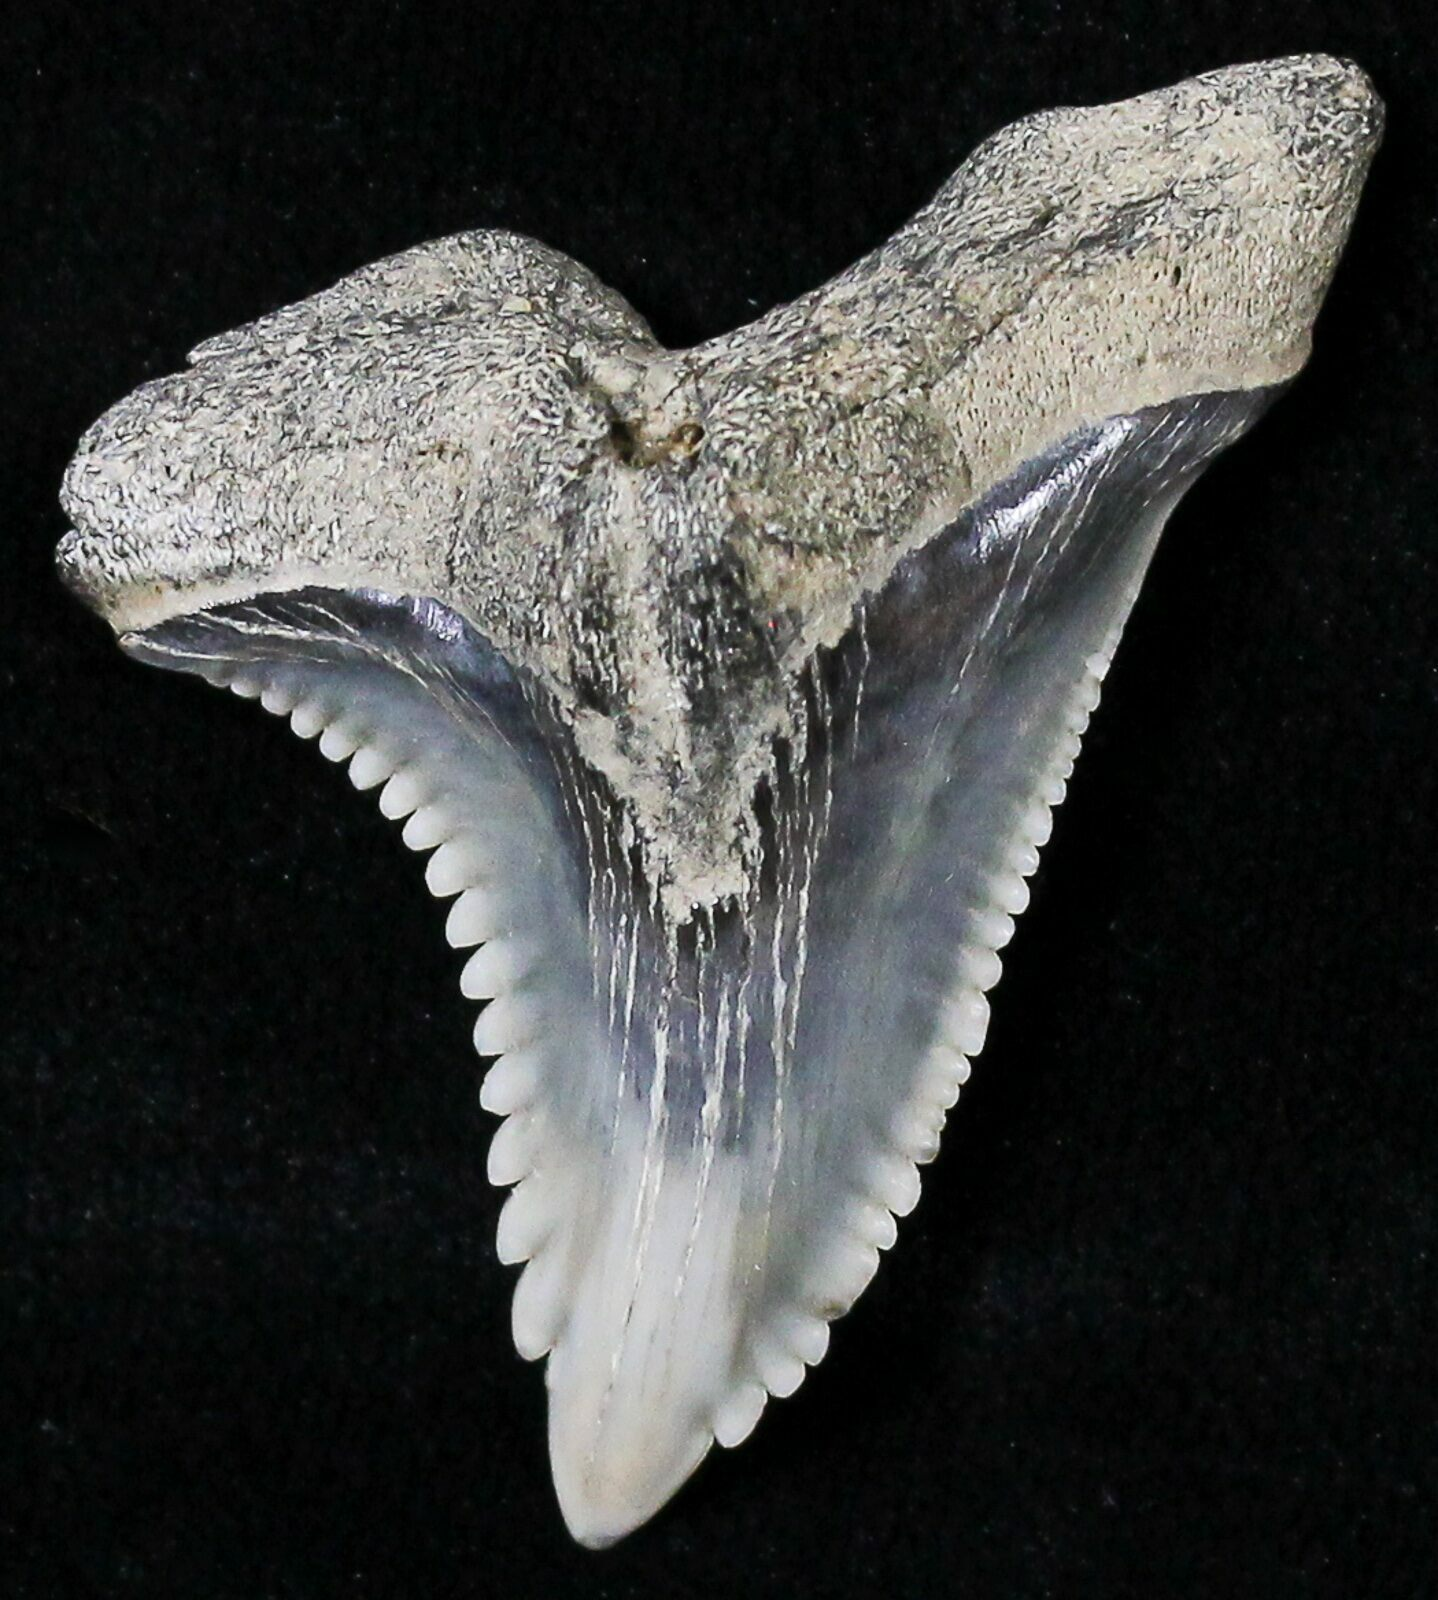 1 43 Hemipristis Shark Tooth Fossil